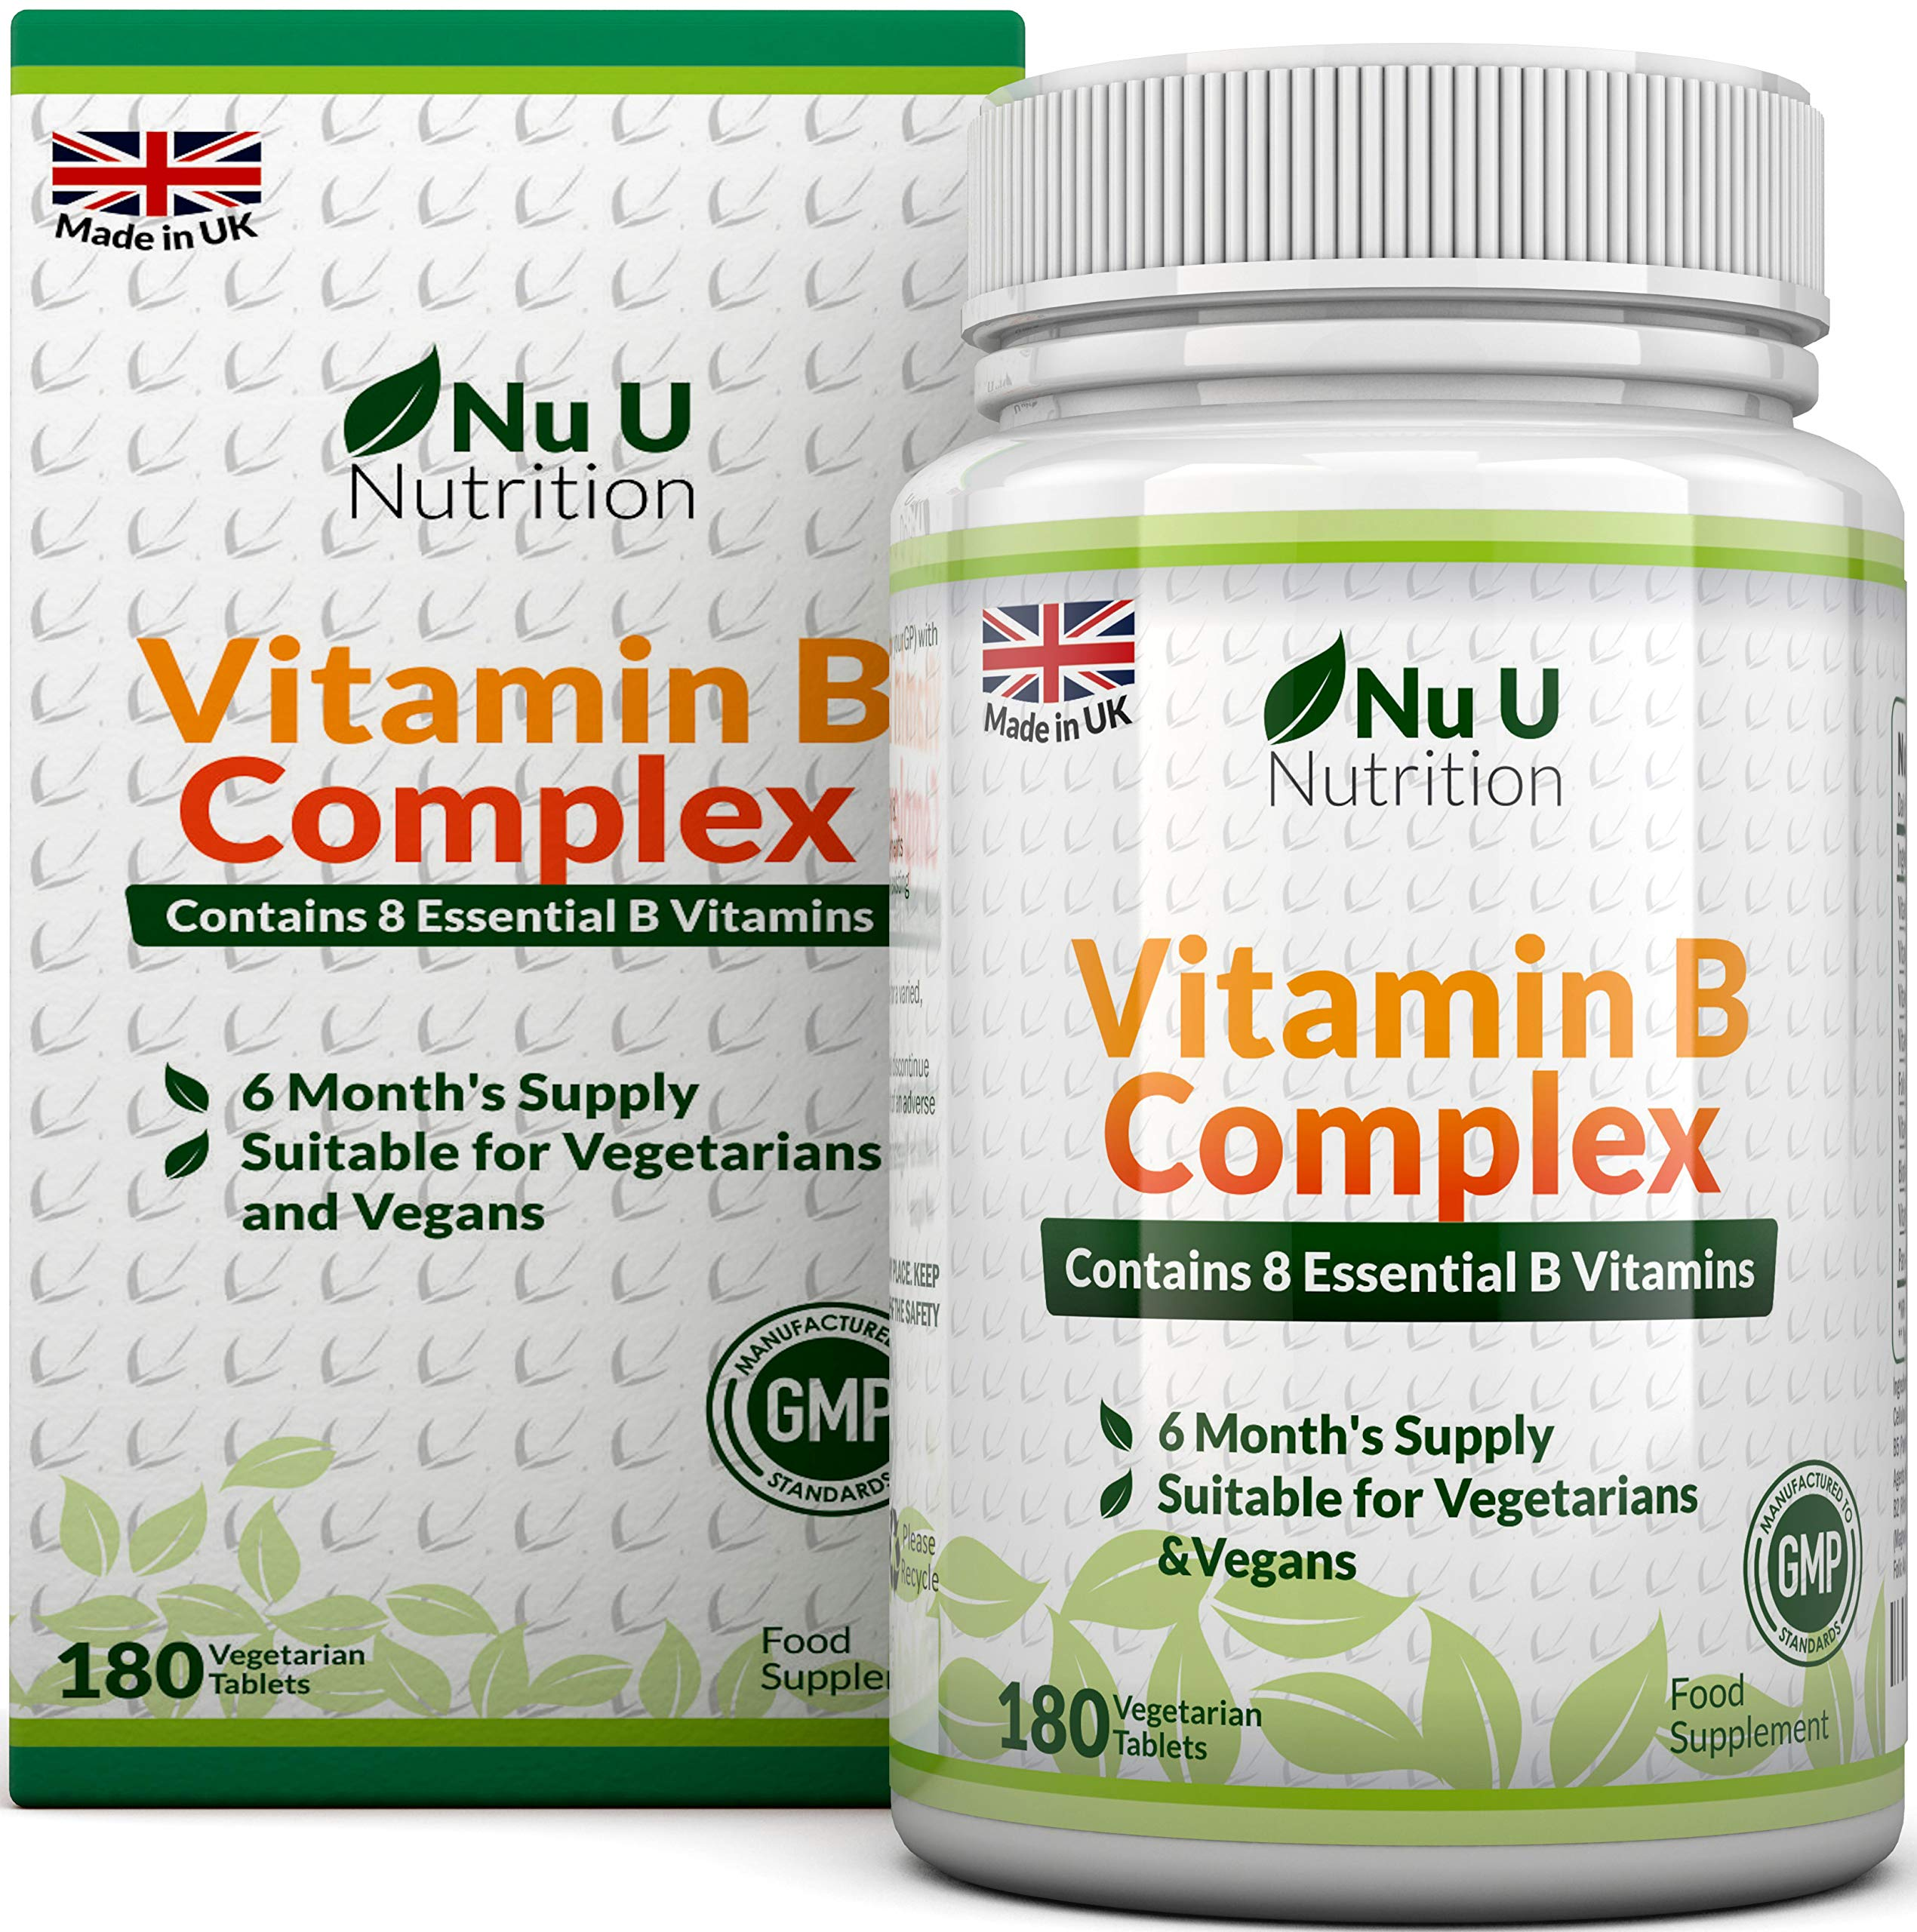 Vitamin B Complex 180 tablets 6 Month Supply Vegetarian & Vegan product image